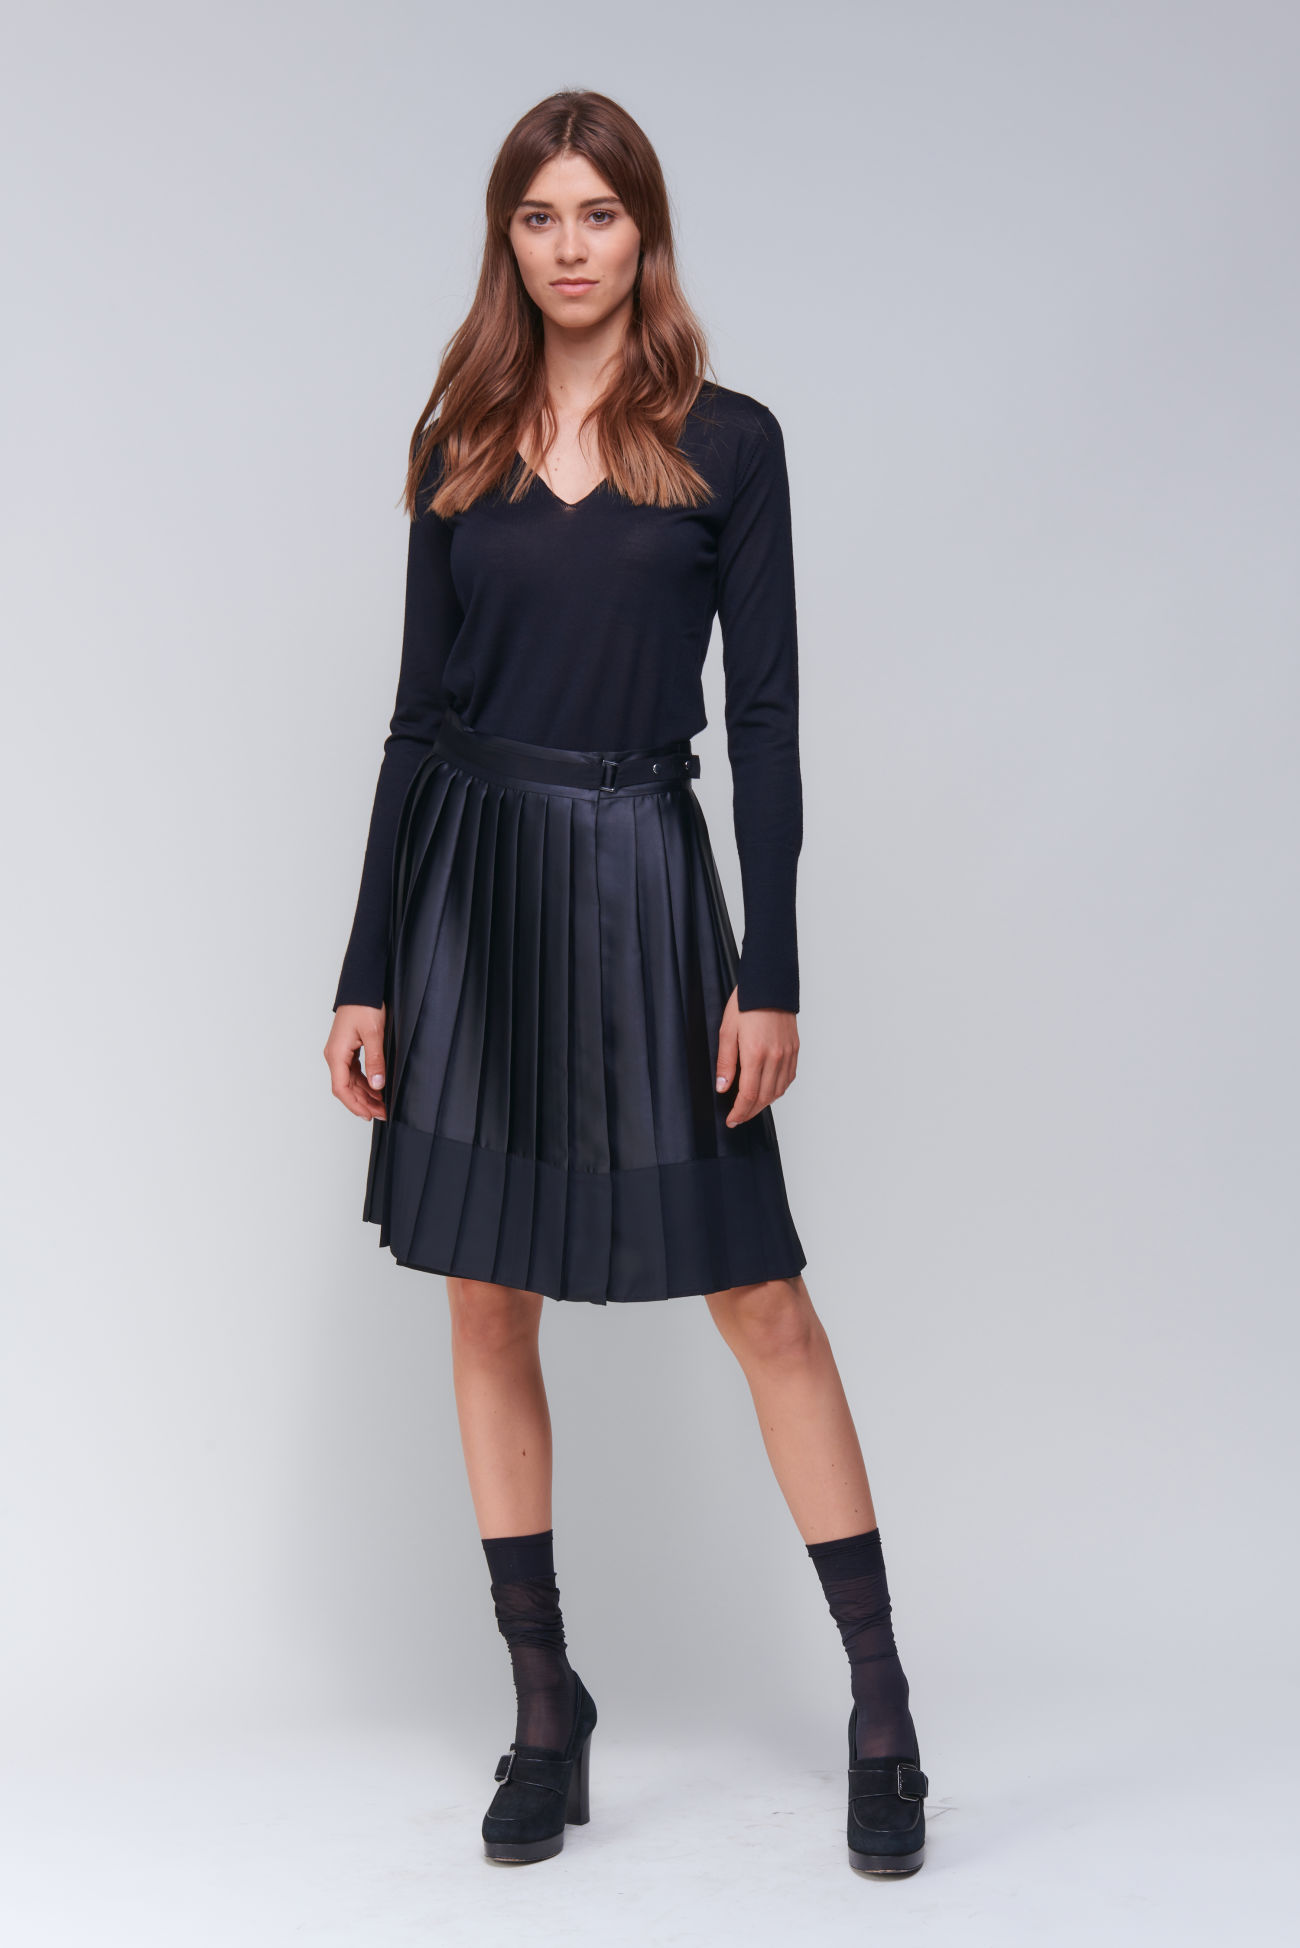 Pleated skirt in matt / shiny - combination